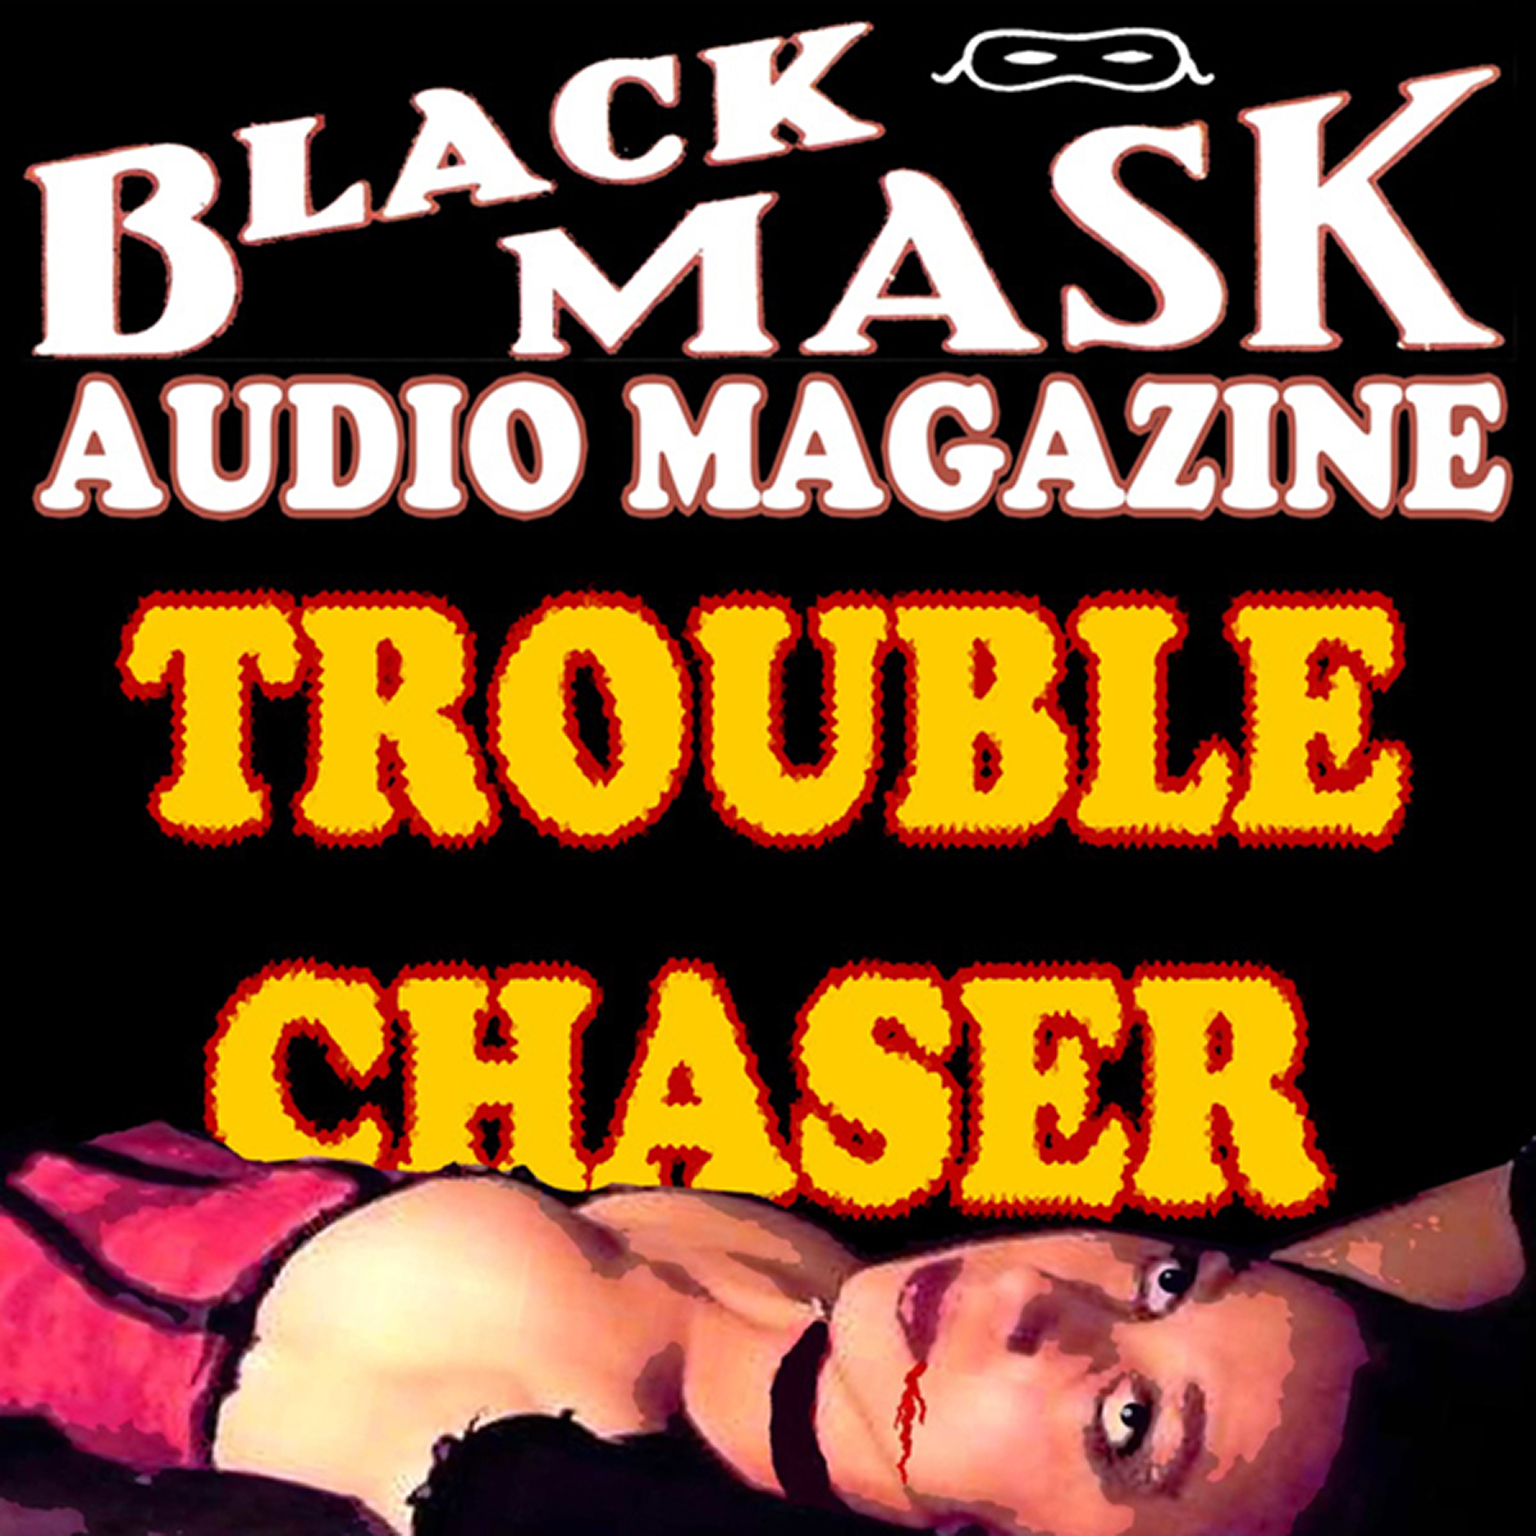 Printable Trouble Chaser: Black Mask Audio Magazine Audiobook Cover Art